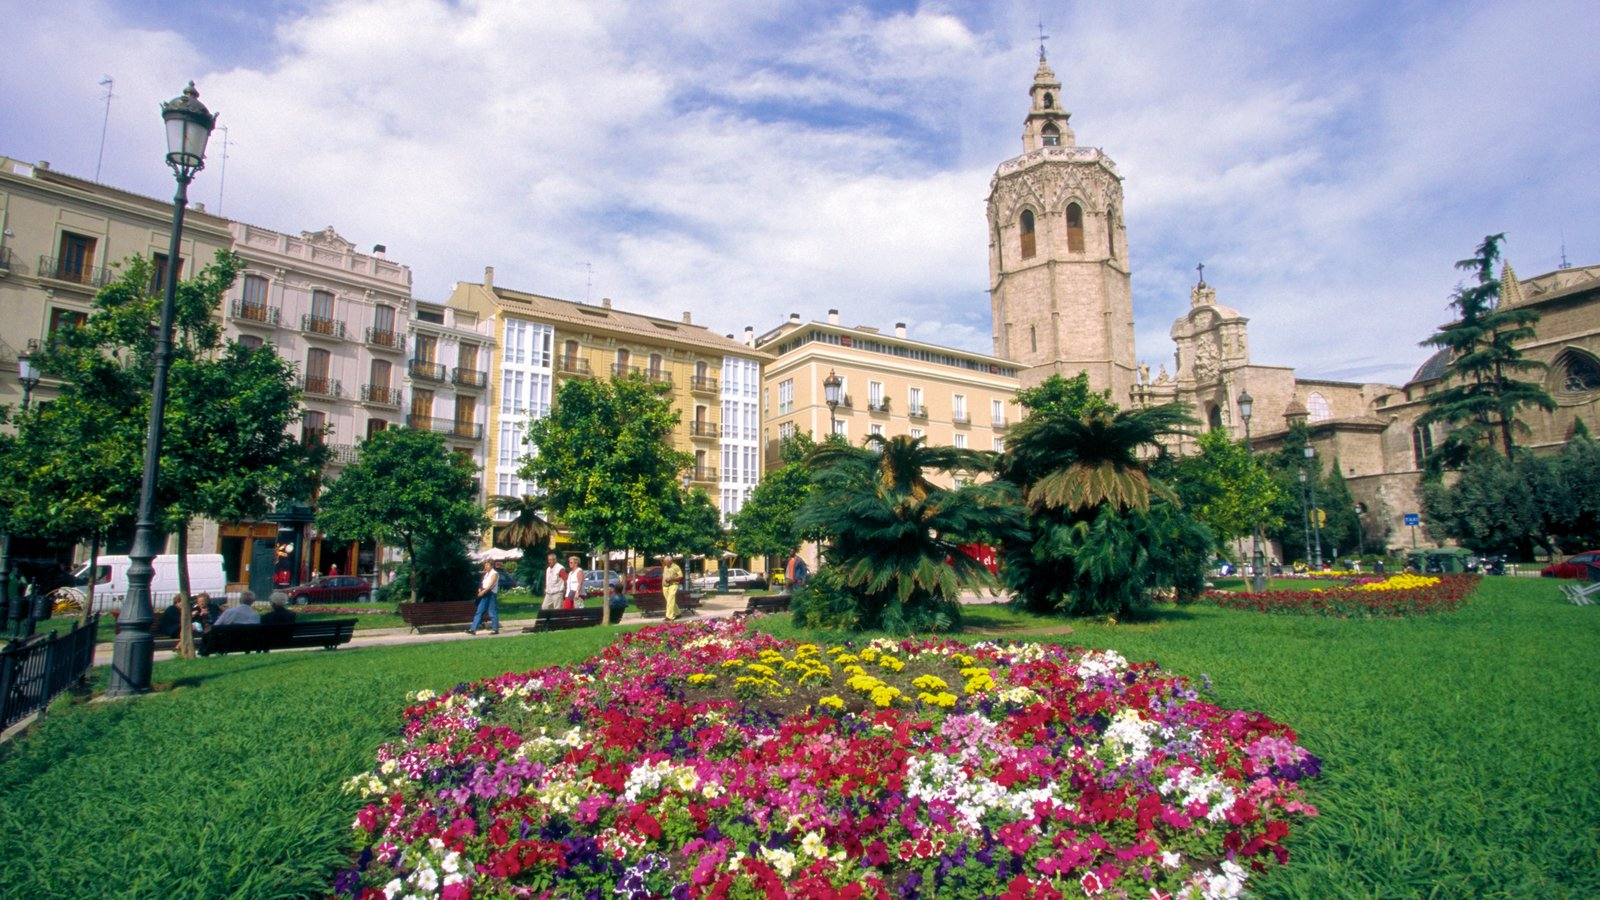 Plaza de la Reina showing a church or cathedral, flowers and a city